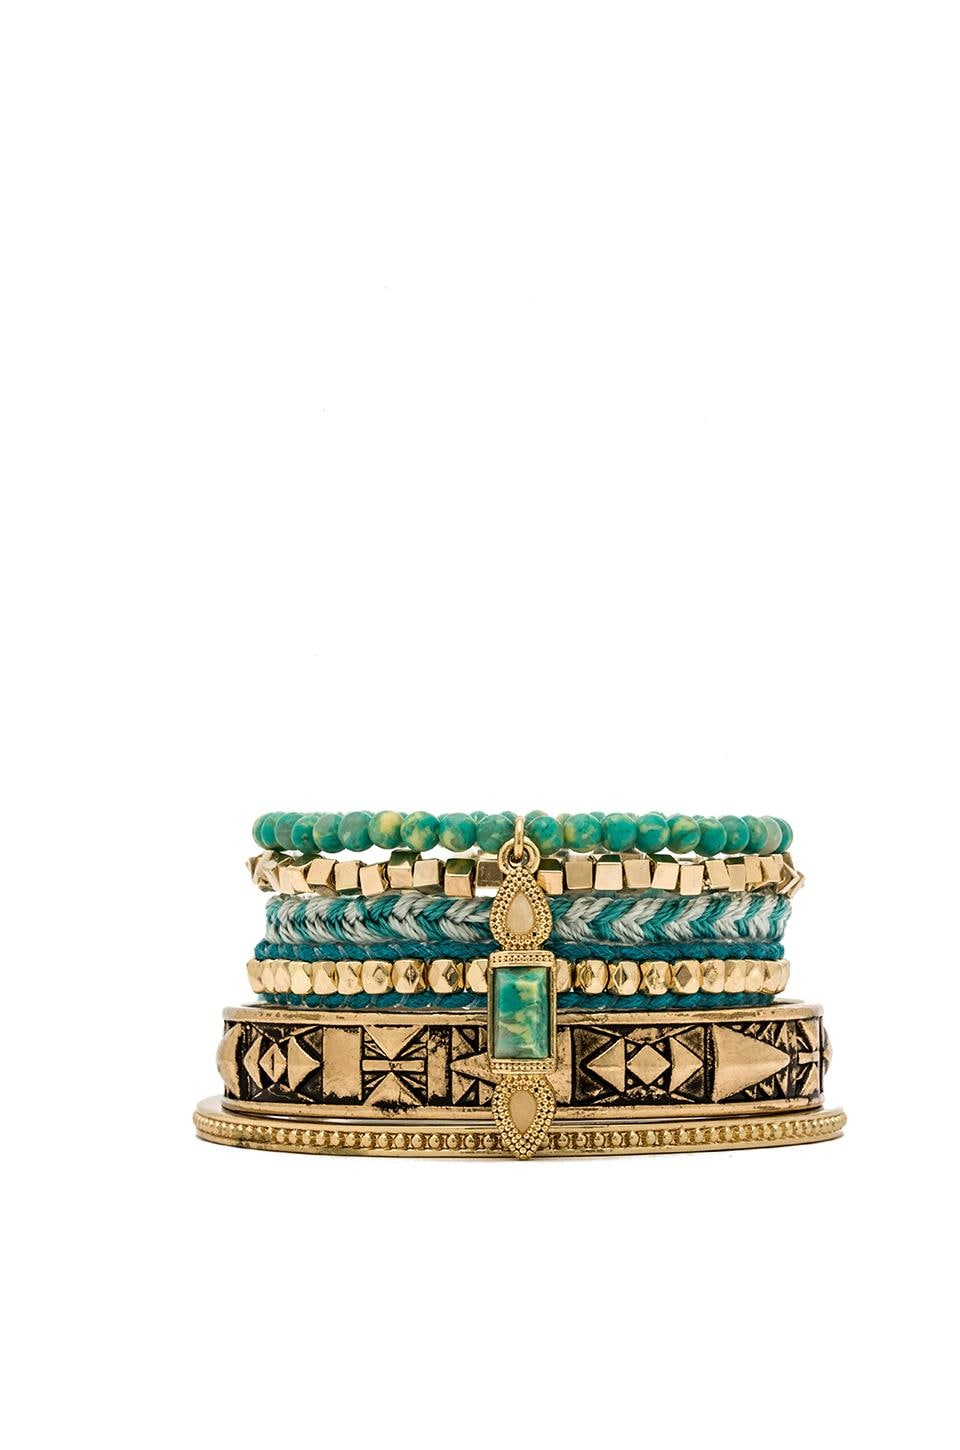 Samantha Wills This is Bliss Bracelet Set in Speckled Turquoise